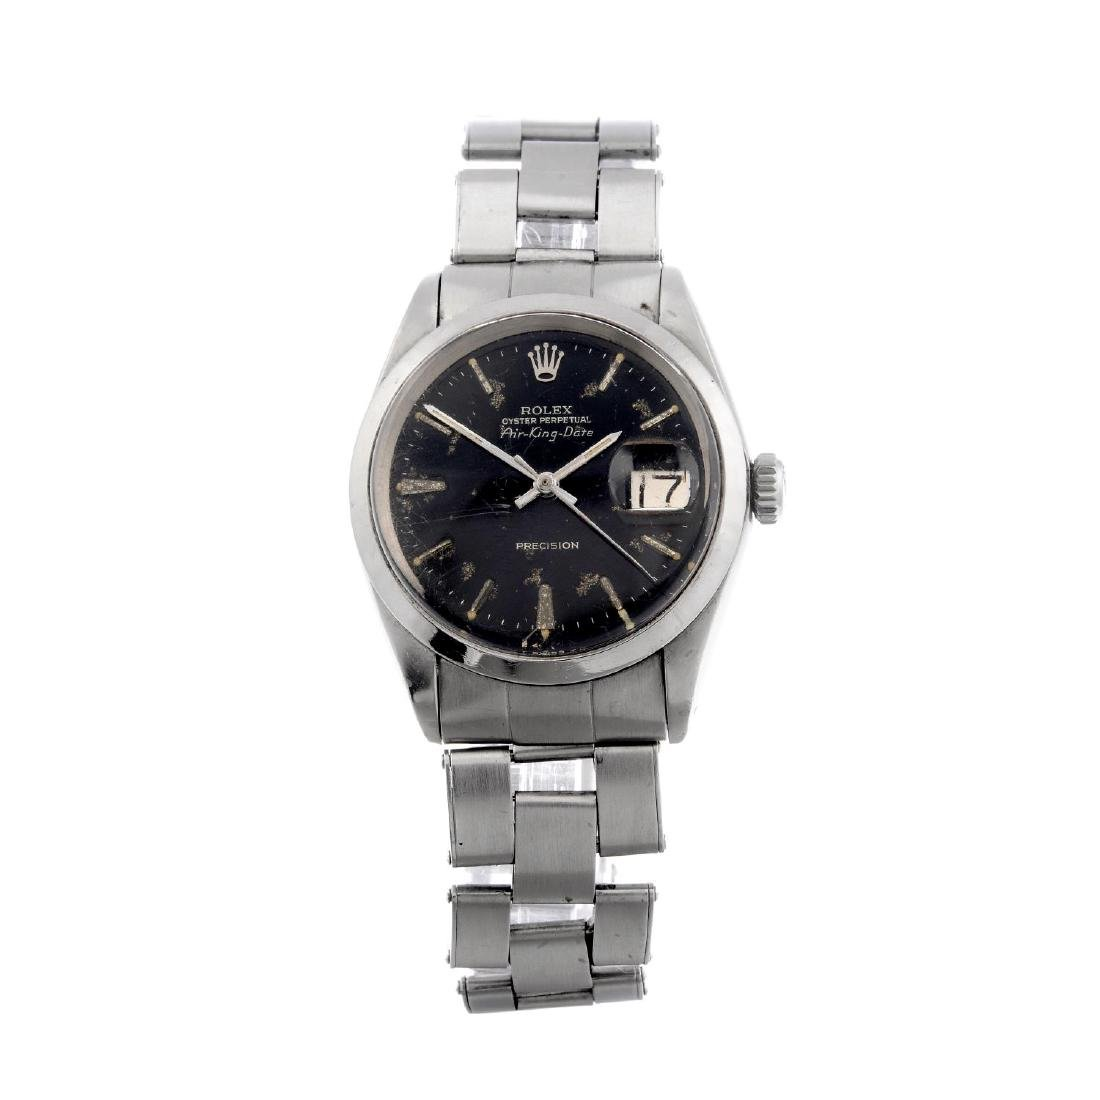 ROLEX - a gentleman's Oyster Perpetual Air-King Date